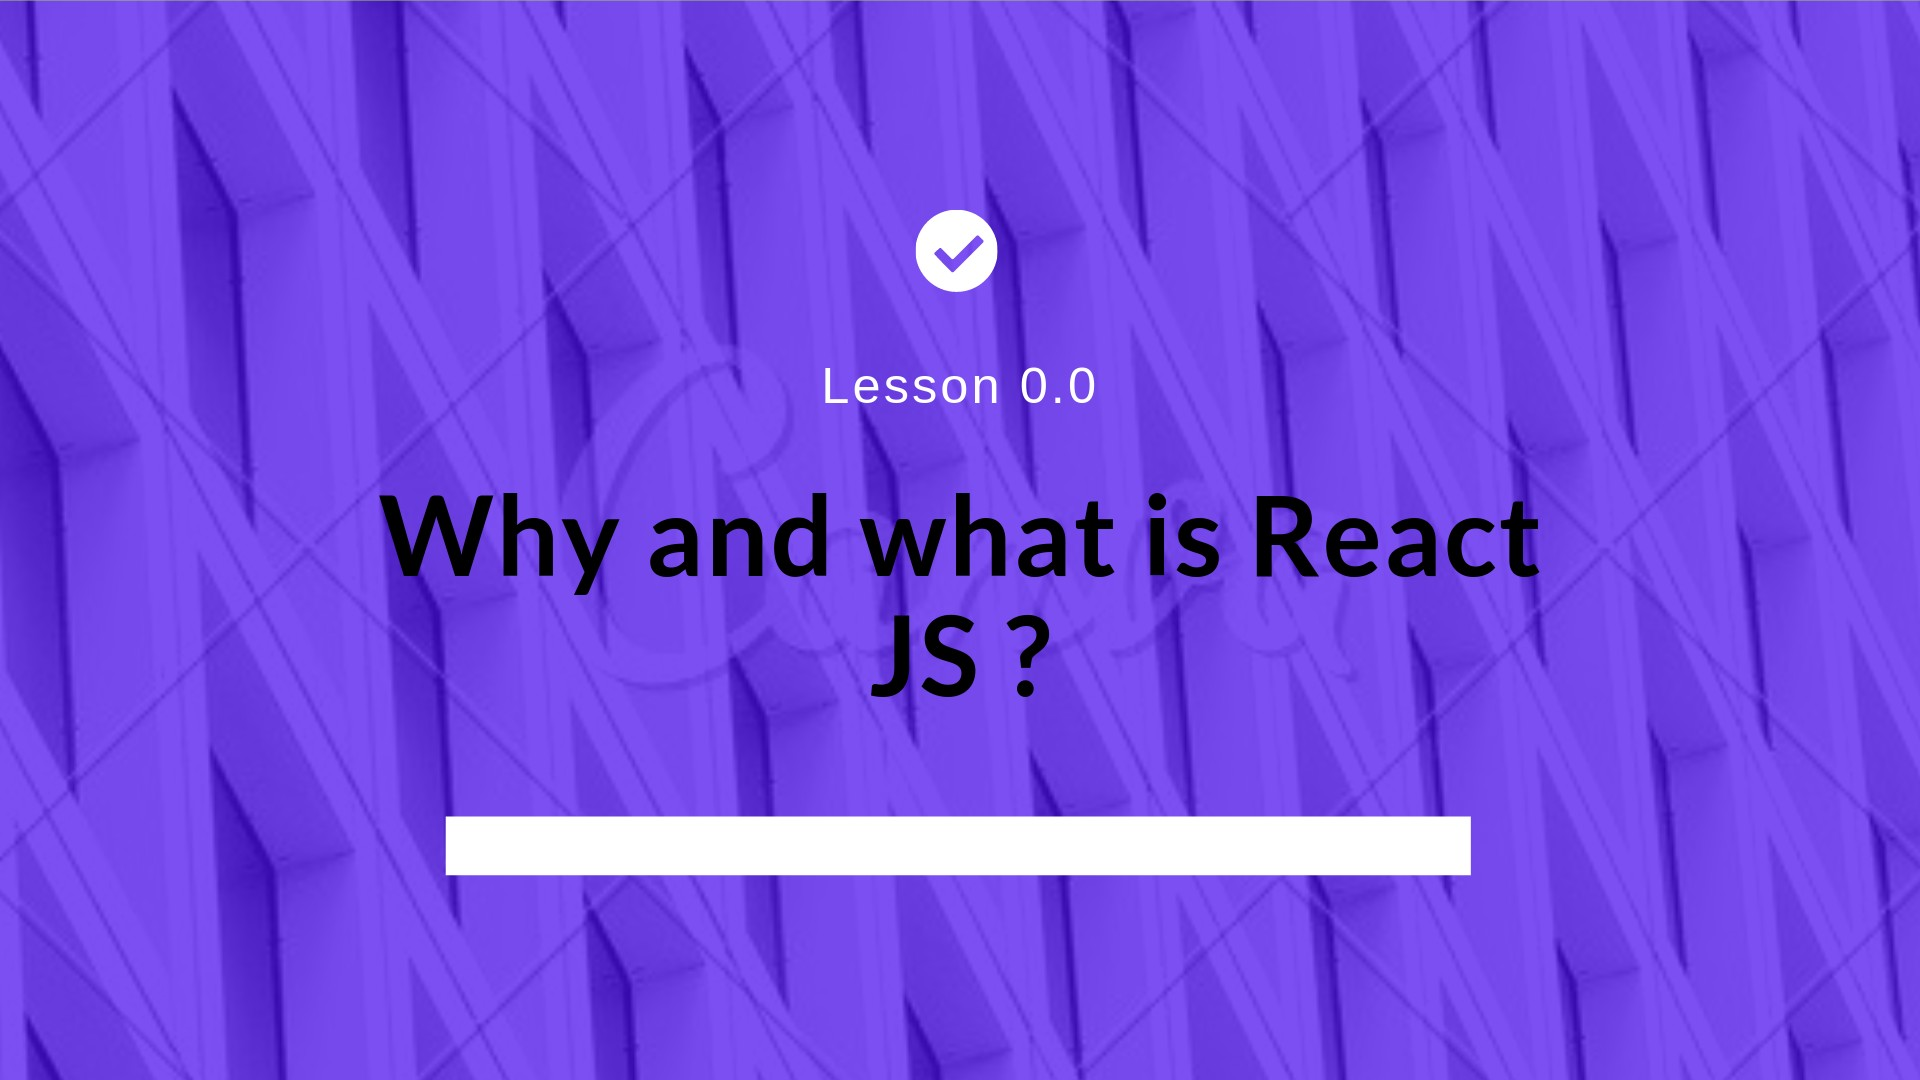 What and why React JS?